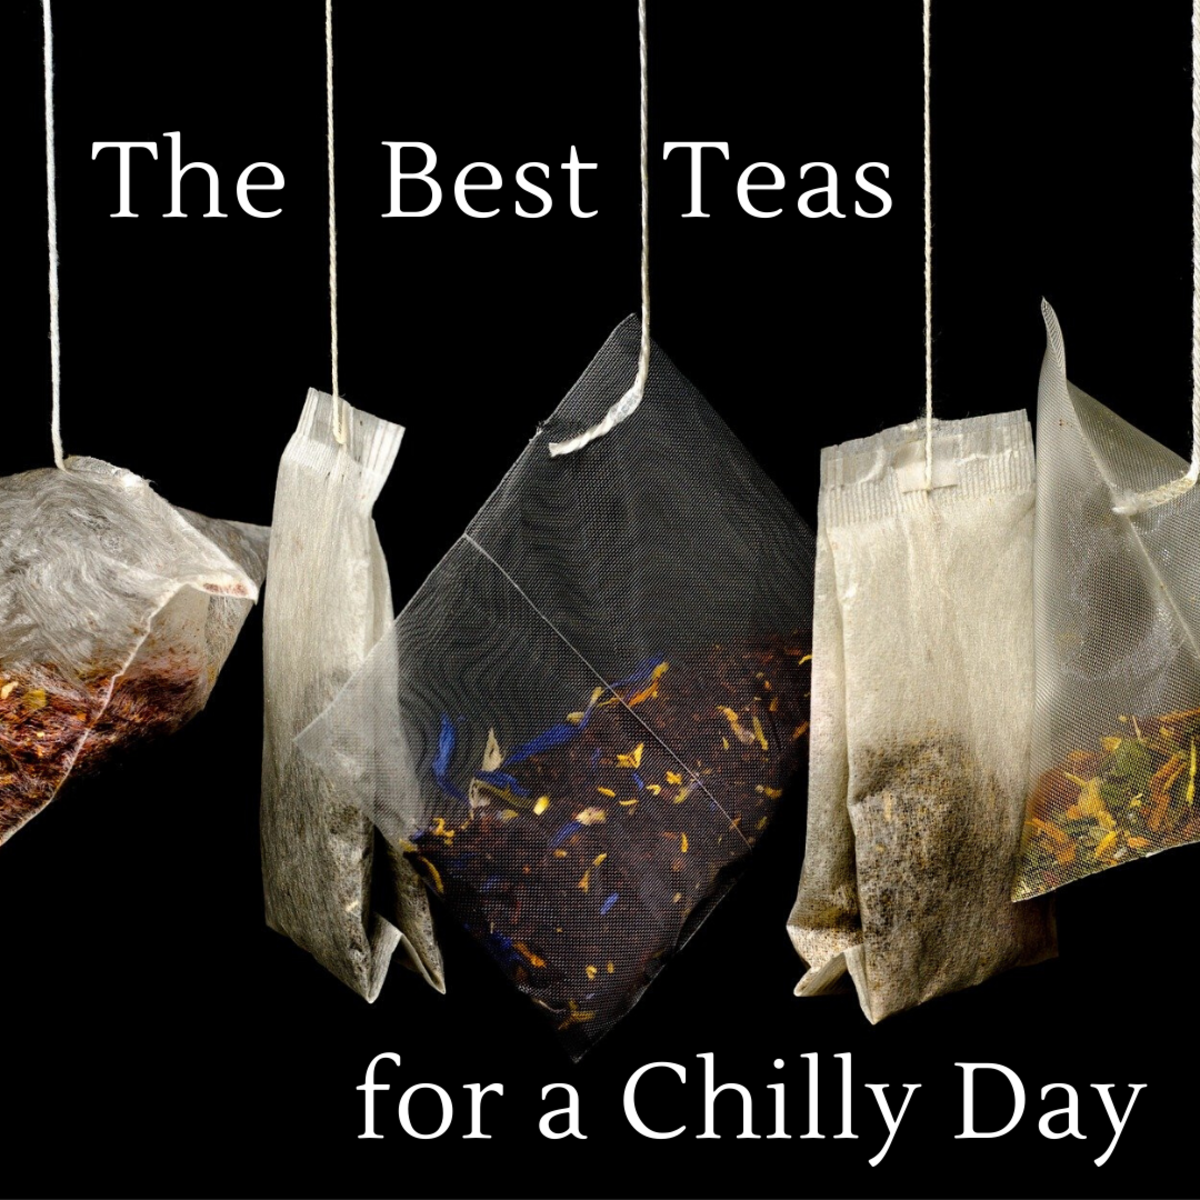 Best Teas for a Chilly Day